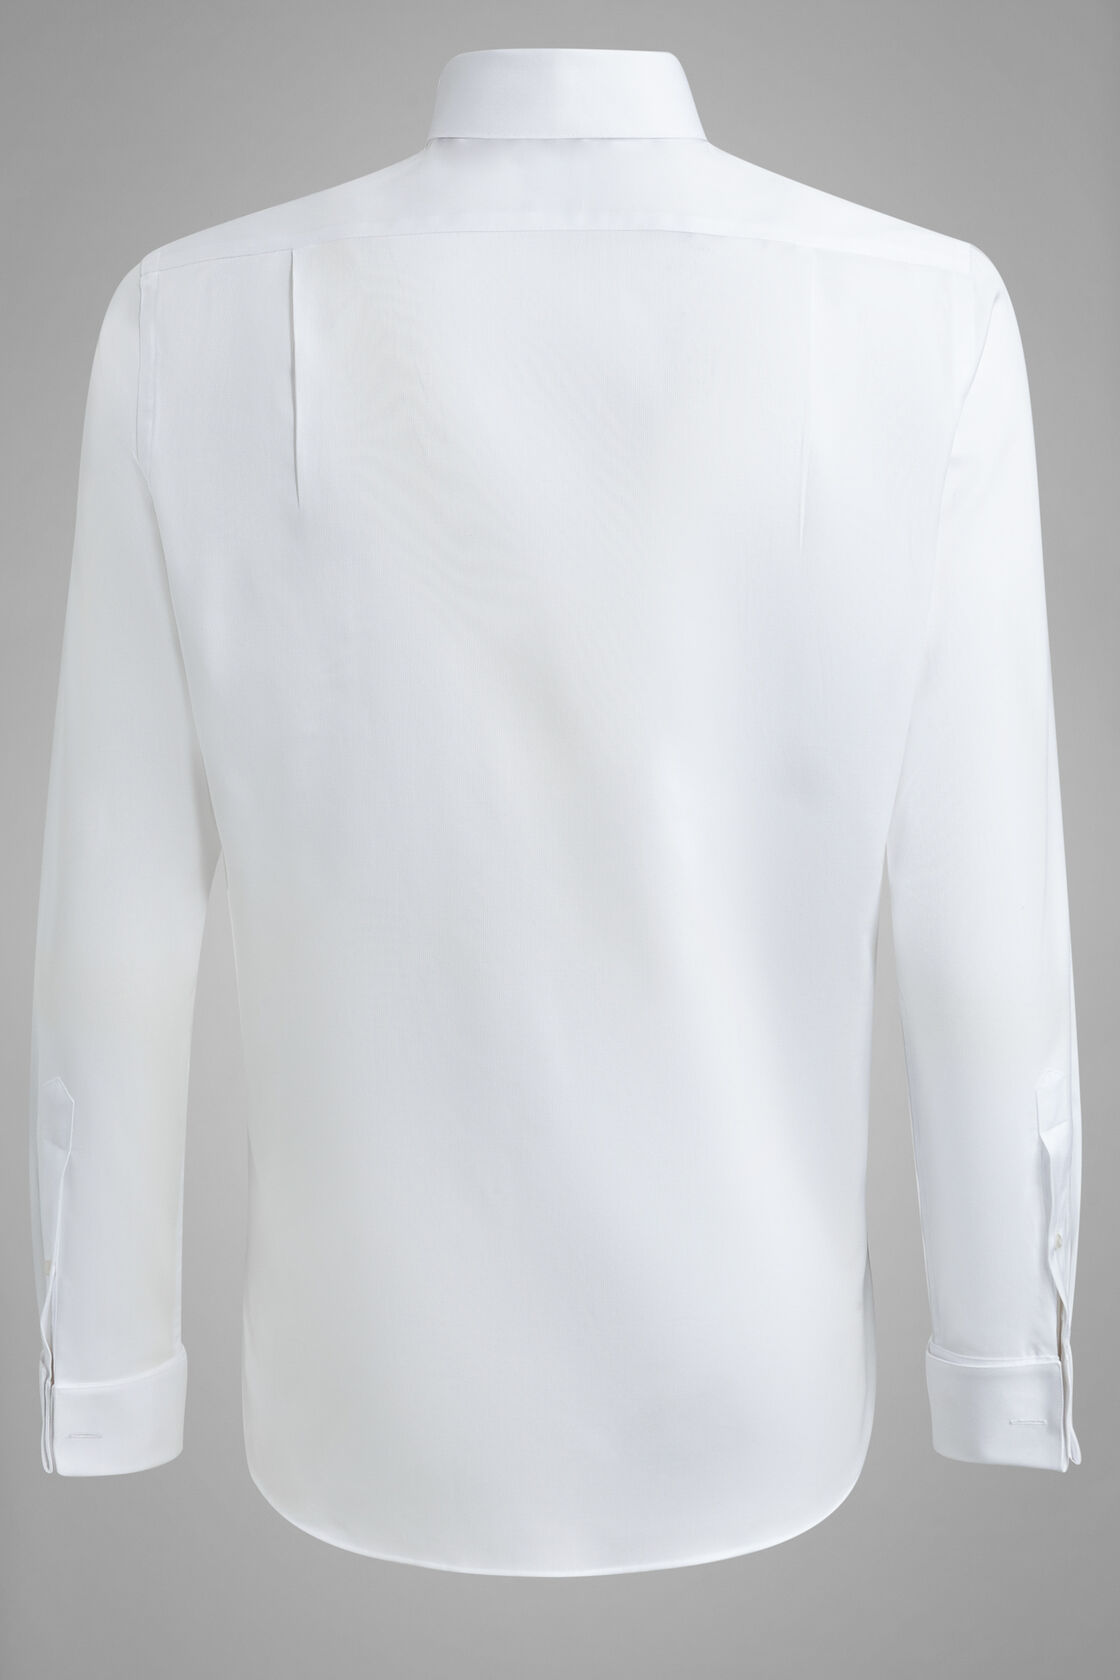 Camicia Bianca Collo Diplomatico Regular Fit, Bianco, hi-res